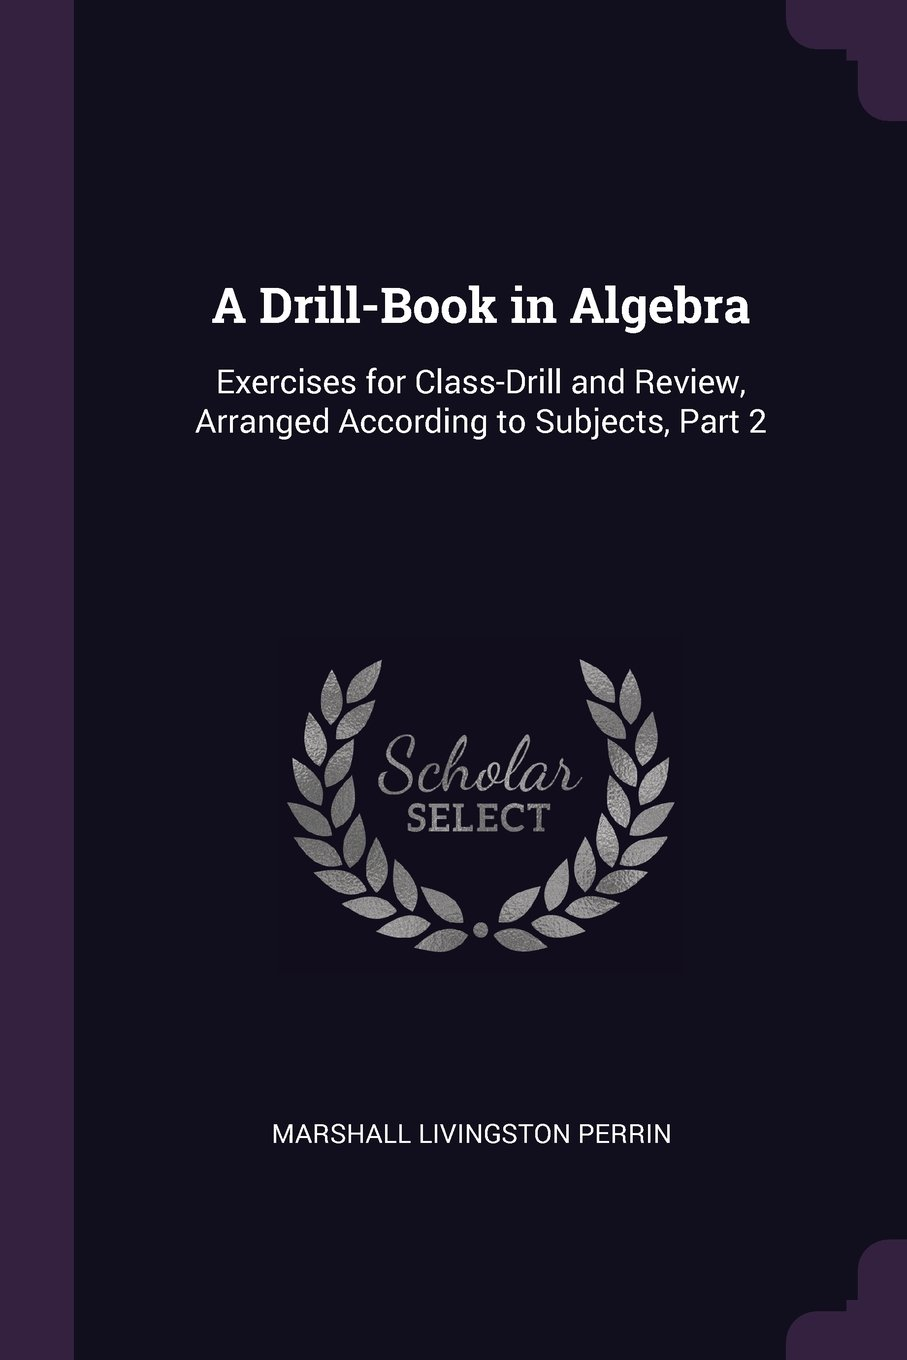 Download A Drill-Book in Algebra: Exercises for Class-Drill and Review, Arranged According to Subjects, Part 2 PDF